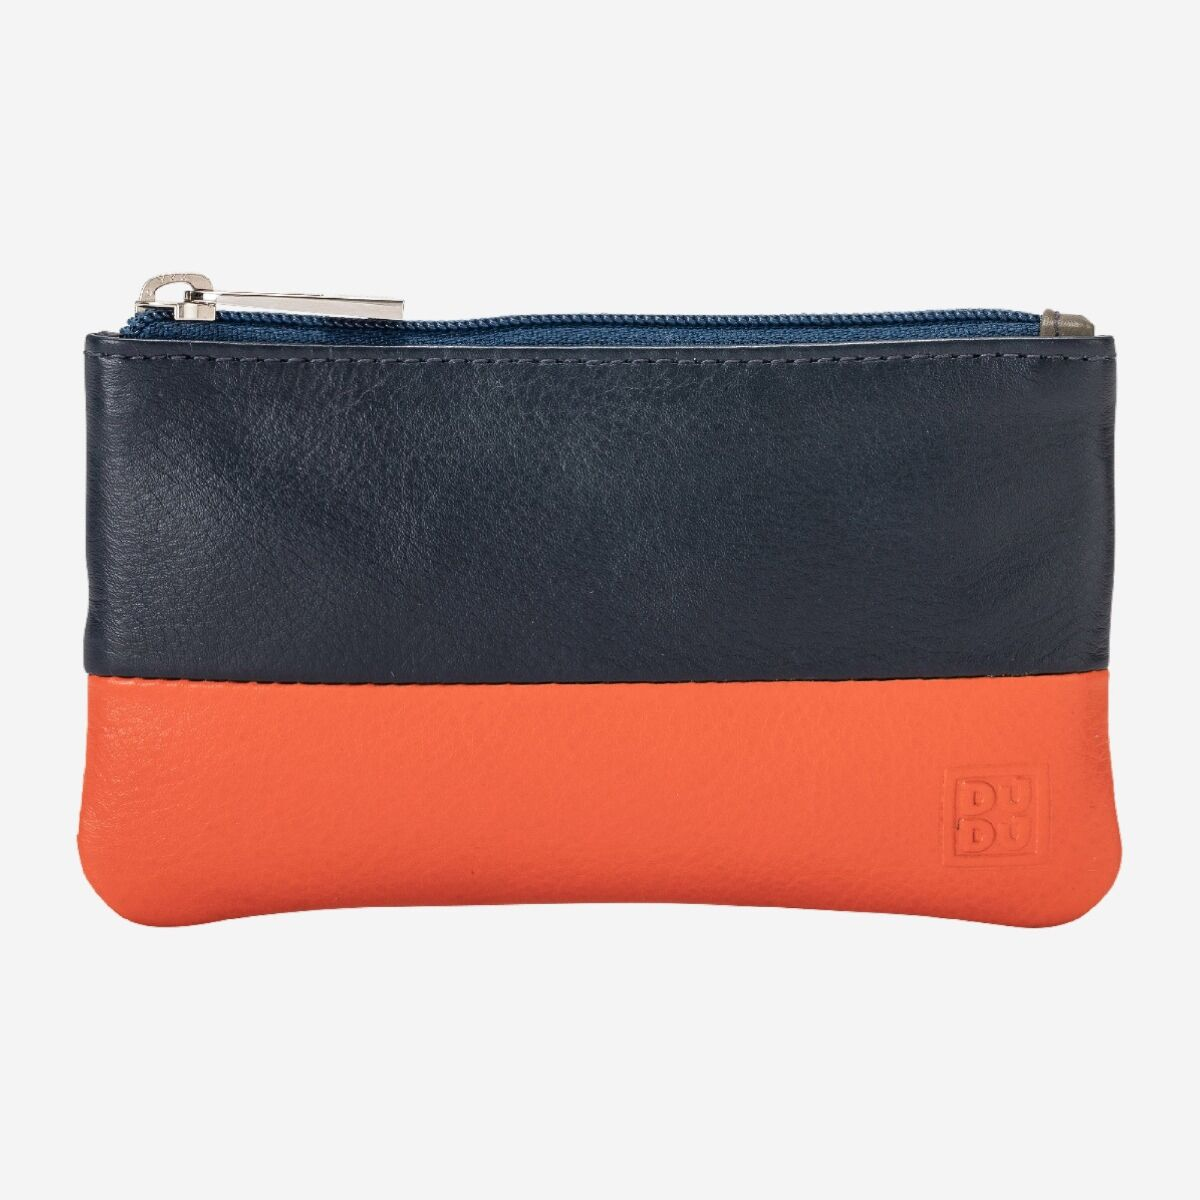 NUVOLA PELLE Leather Coin Purse - Blue/Red